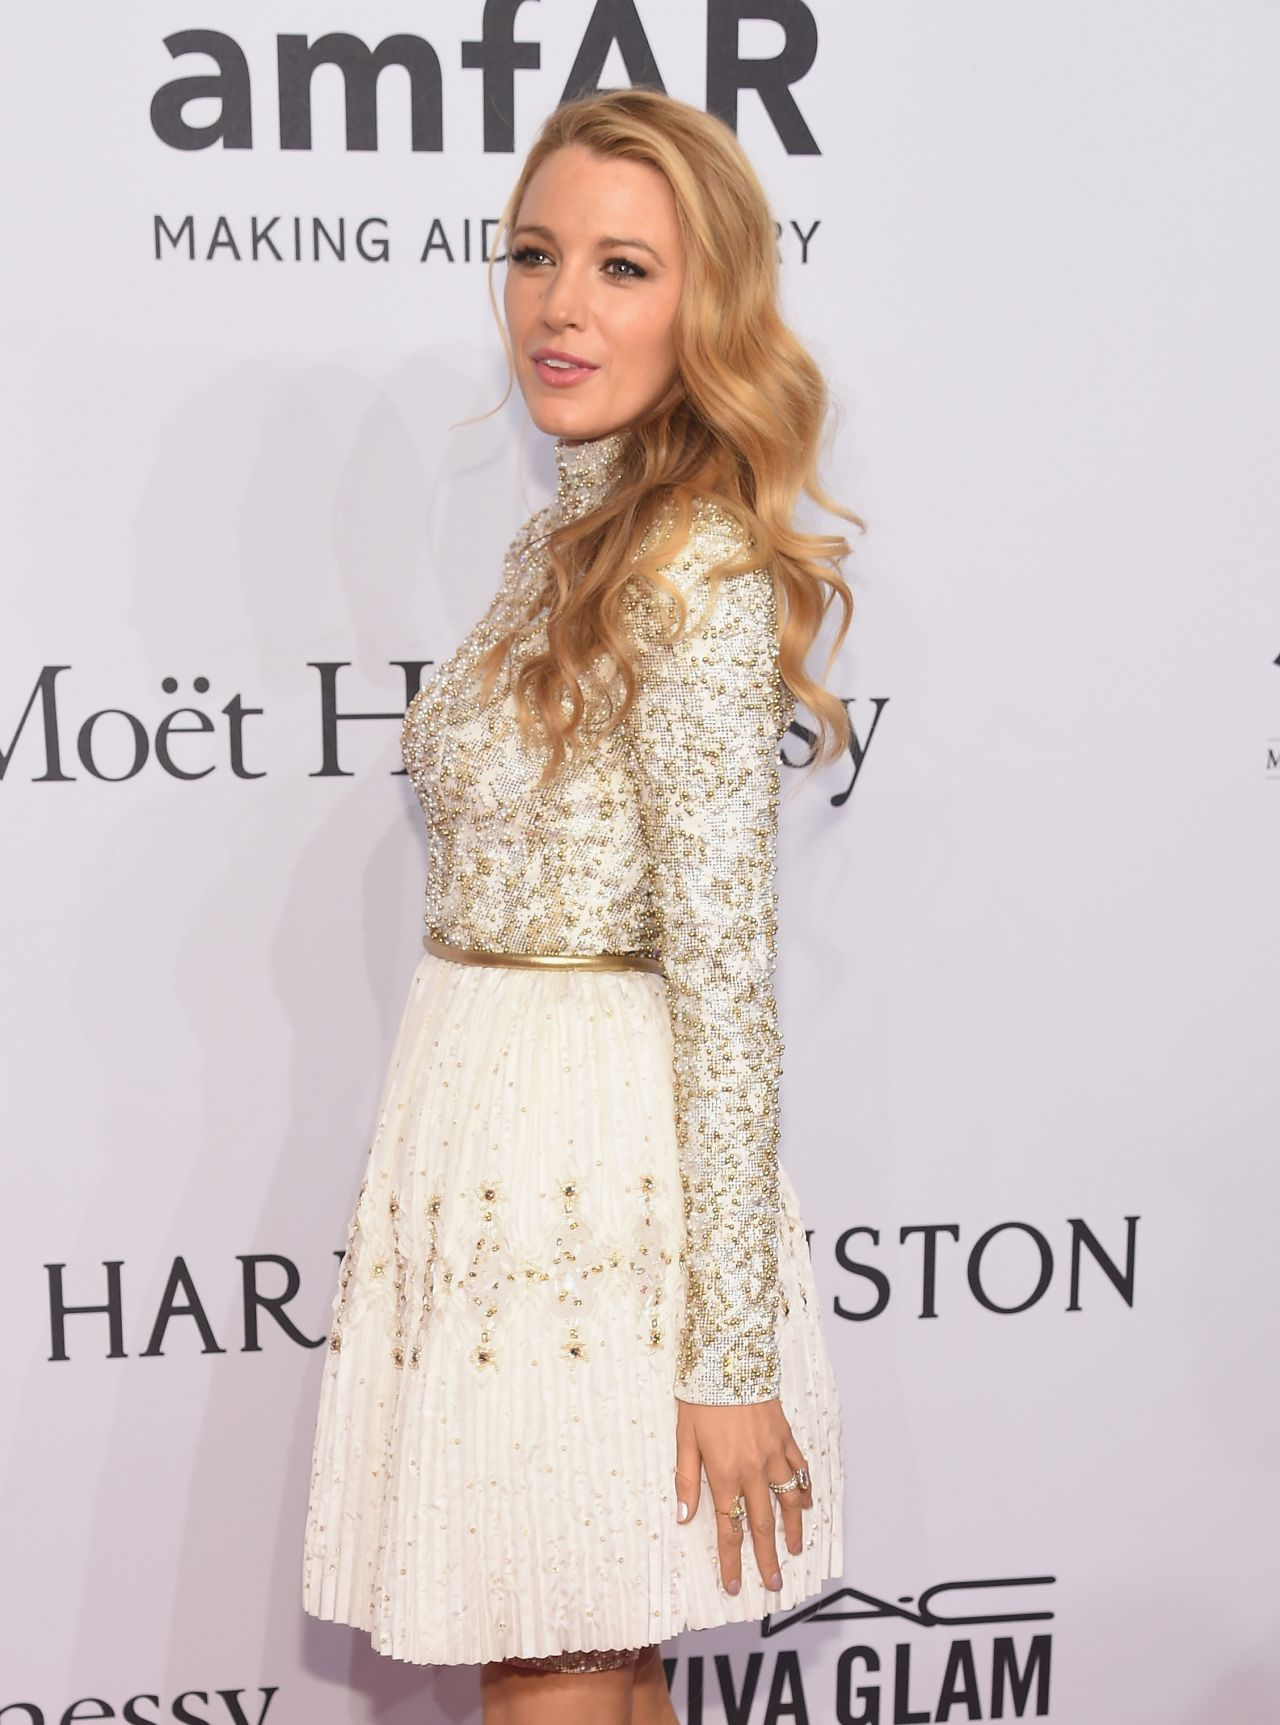 blake-lively-2016-amfar-new-york-gala-in-new-york-city-ny-6